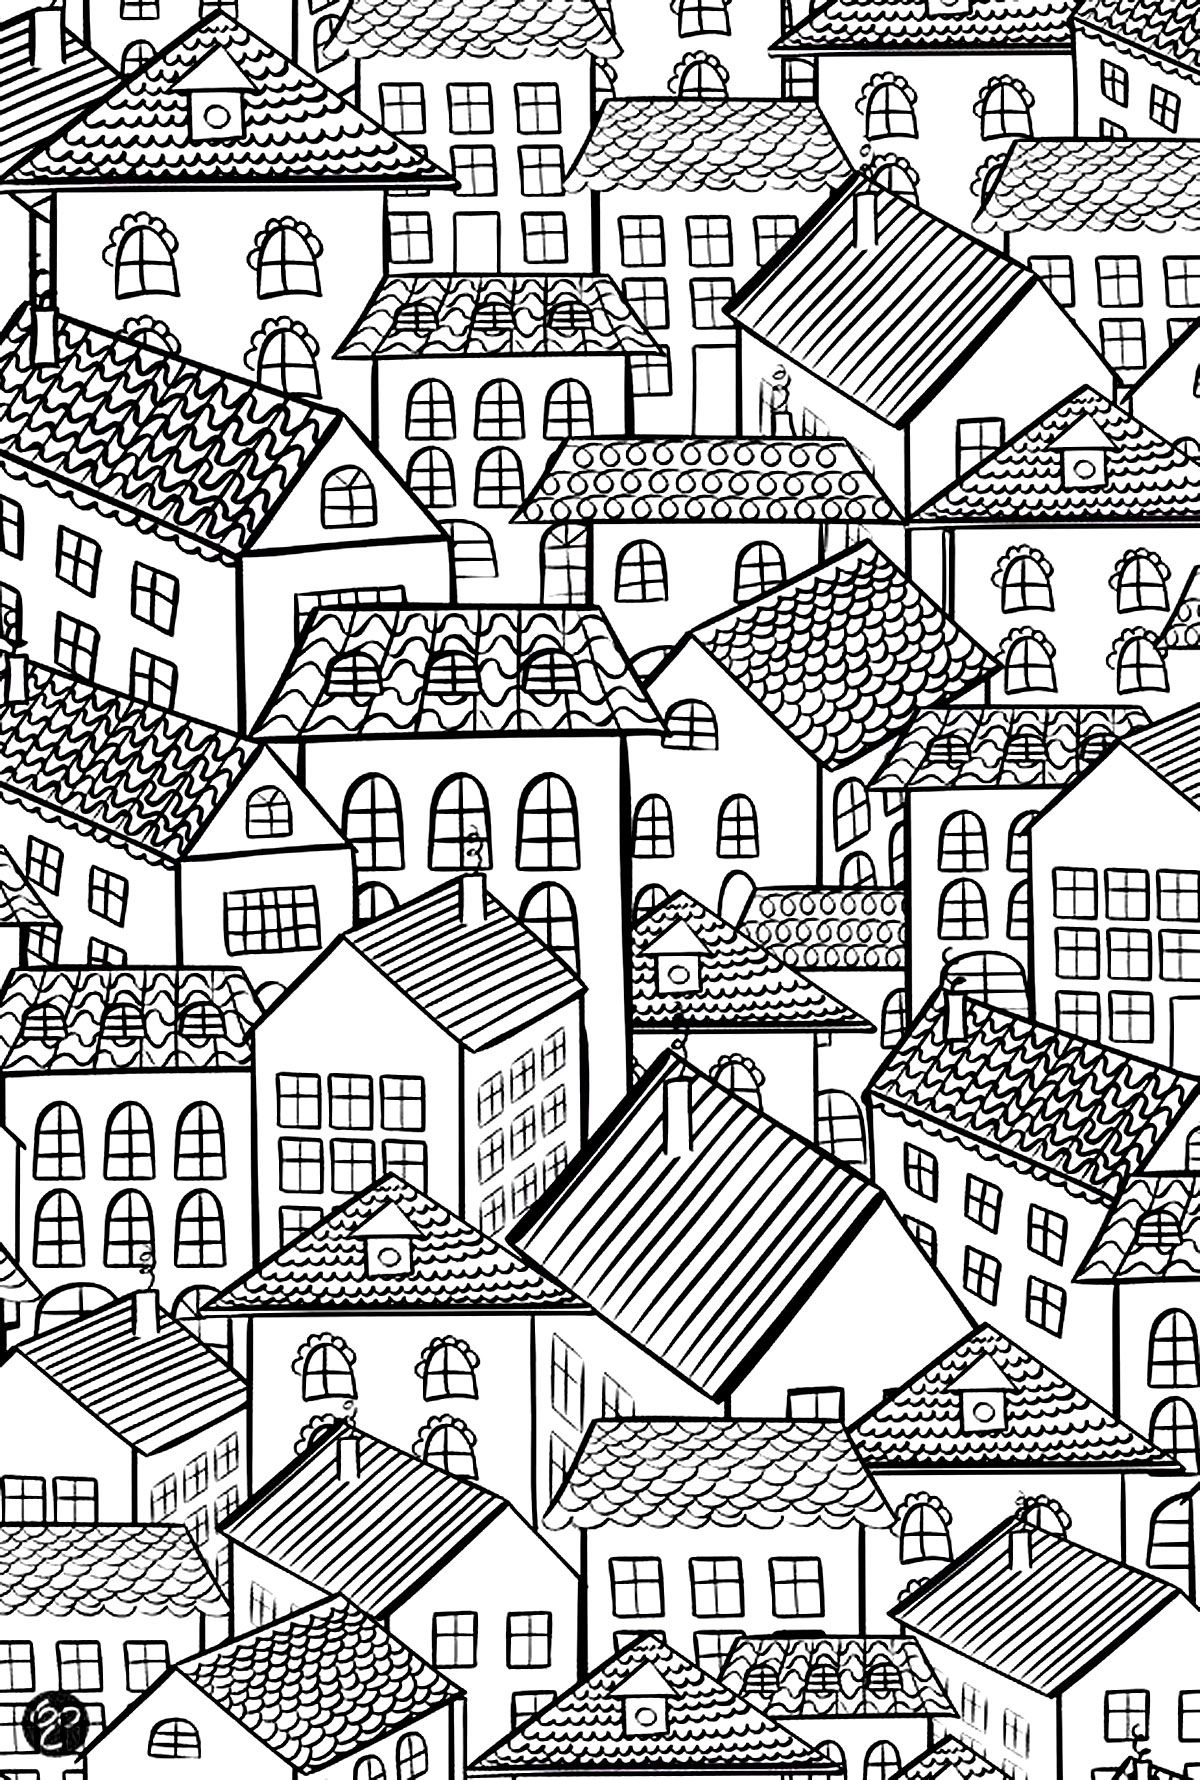 To Print This Free Coloring Page «coloring Architecture Village